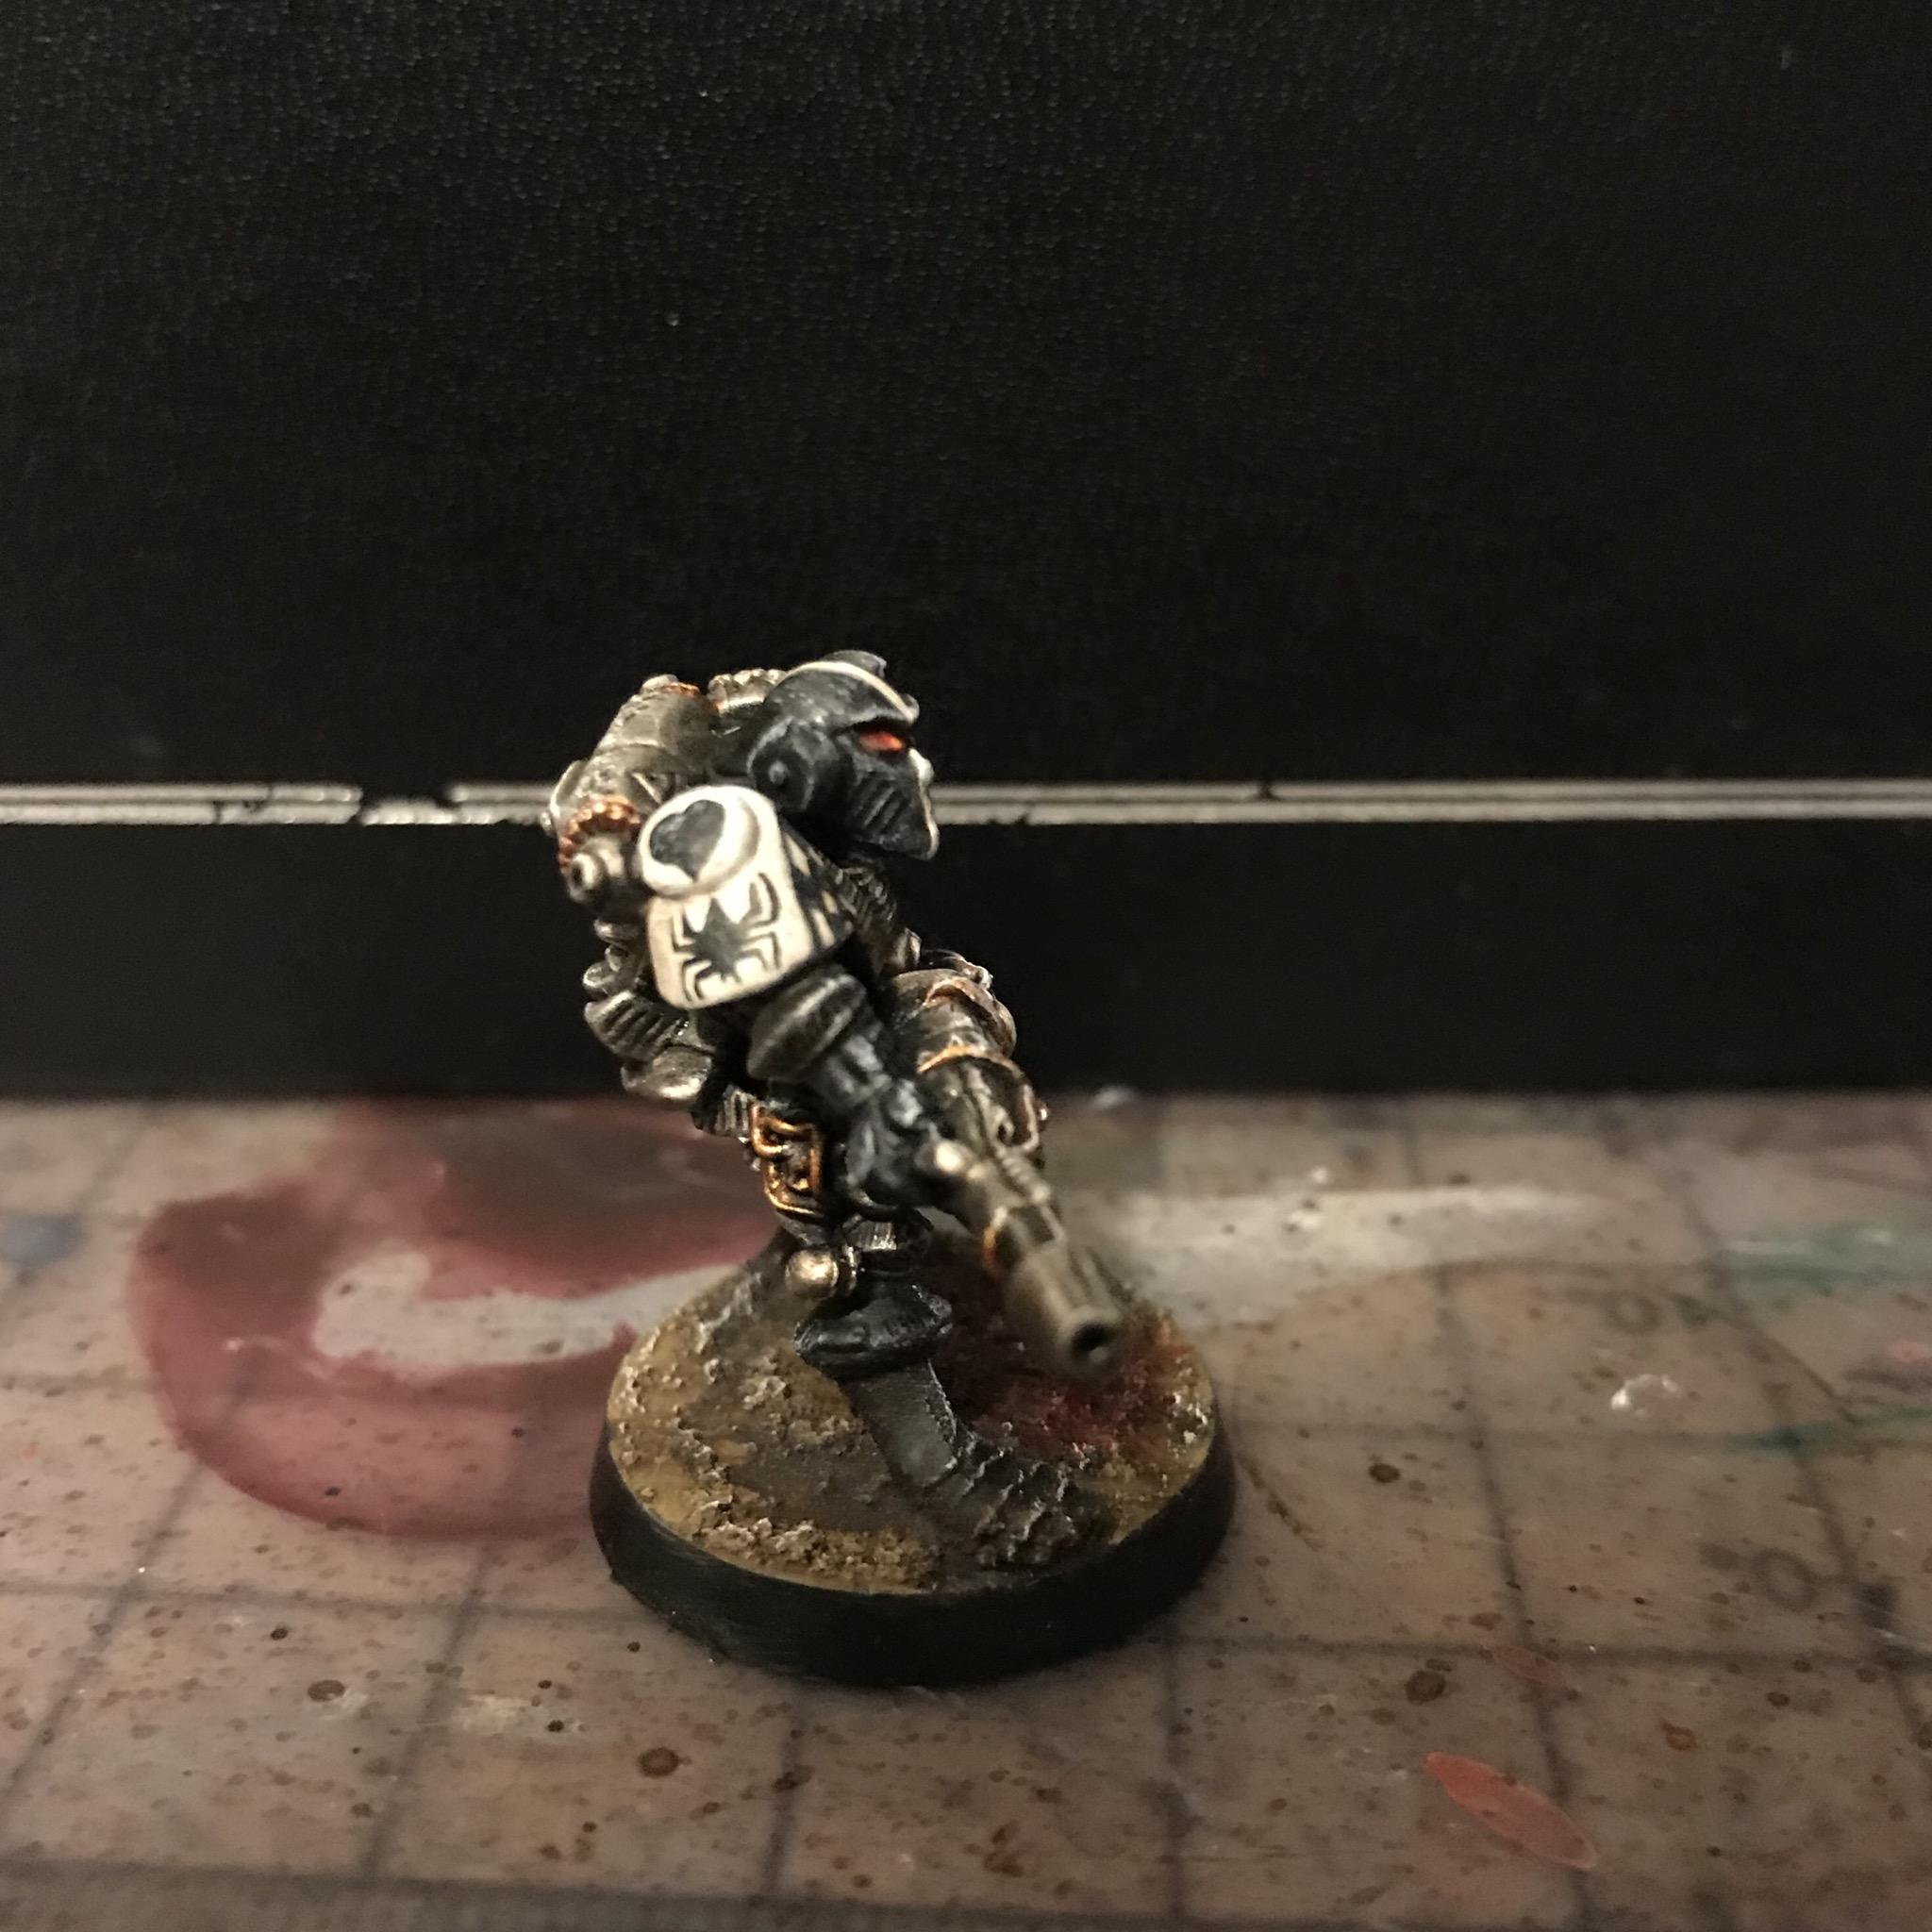 117, 2nd, 41st, Adeptus, And, Armor, Astartes, Badab, Battle, Black, Blade, Bolters, Boltguns, Brother, Brothers, Brutal, C100, Captain, Chaos, Chaotic, Chapter, Chapters, Combi, Combi-bolter, Combi-disintegrator, Combi-weapon, Corsairs, Damned, Dark, Darkness, Deep, Disintegrator, Eye, Far, Fj, Founding, Future, Gate, God, Gods, Grim, Heavy, Heresy, Hobby, Horus, Human, Humans, Imperial, Imperium, Kaos, Kill, Legionaries, Legionnaire, Lost, Malal, Malice, Man, Mankind, Millennium, Of, Oldhammer, Painted, Pirates, Power, Power Armor, Power Armored, Powers, Pyro, Pyromaniac, Raiders, Realms, Recon, Red, Reference, Renegade, Renegades, Retro, Rogue, Ruinous, Runner, Second, Shadow, Slaves, Soldier, Space, Space Marines, Spartan, Spider, Spiders, Squad, Successor, Survivors, Tannhäuser, Tannhauser, Team, Teams, Terror, To, Trader, Traders, Traitor, Trooper, Troopers, Troops, Unit, Veteran, Void, War, Warhammer 40,000, Warhammer Fantasy, Warp, Weapon, White, Widow